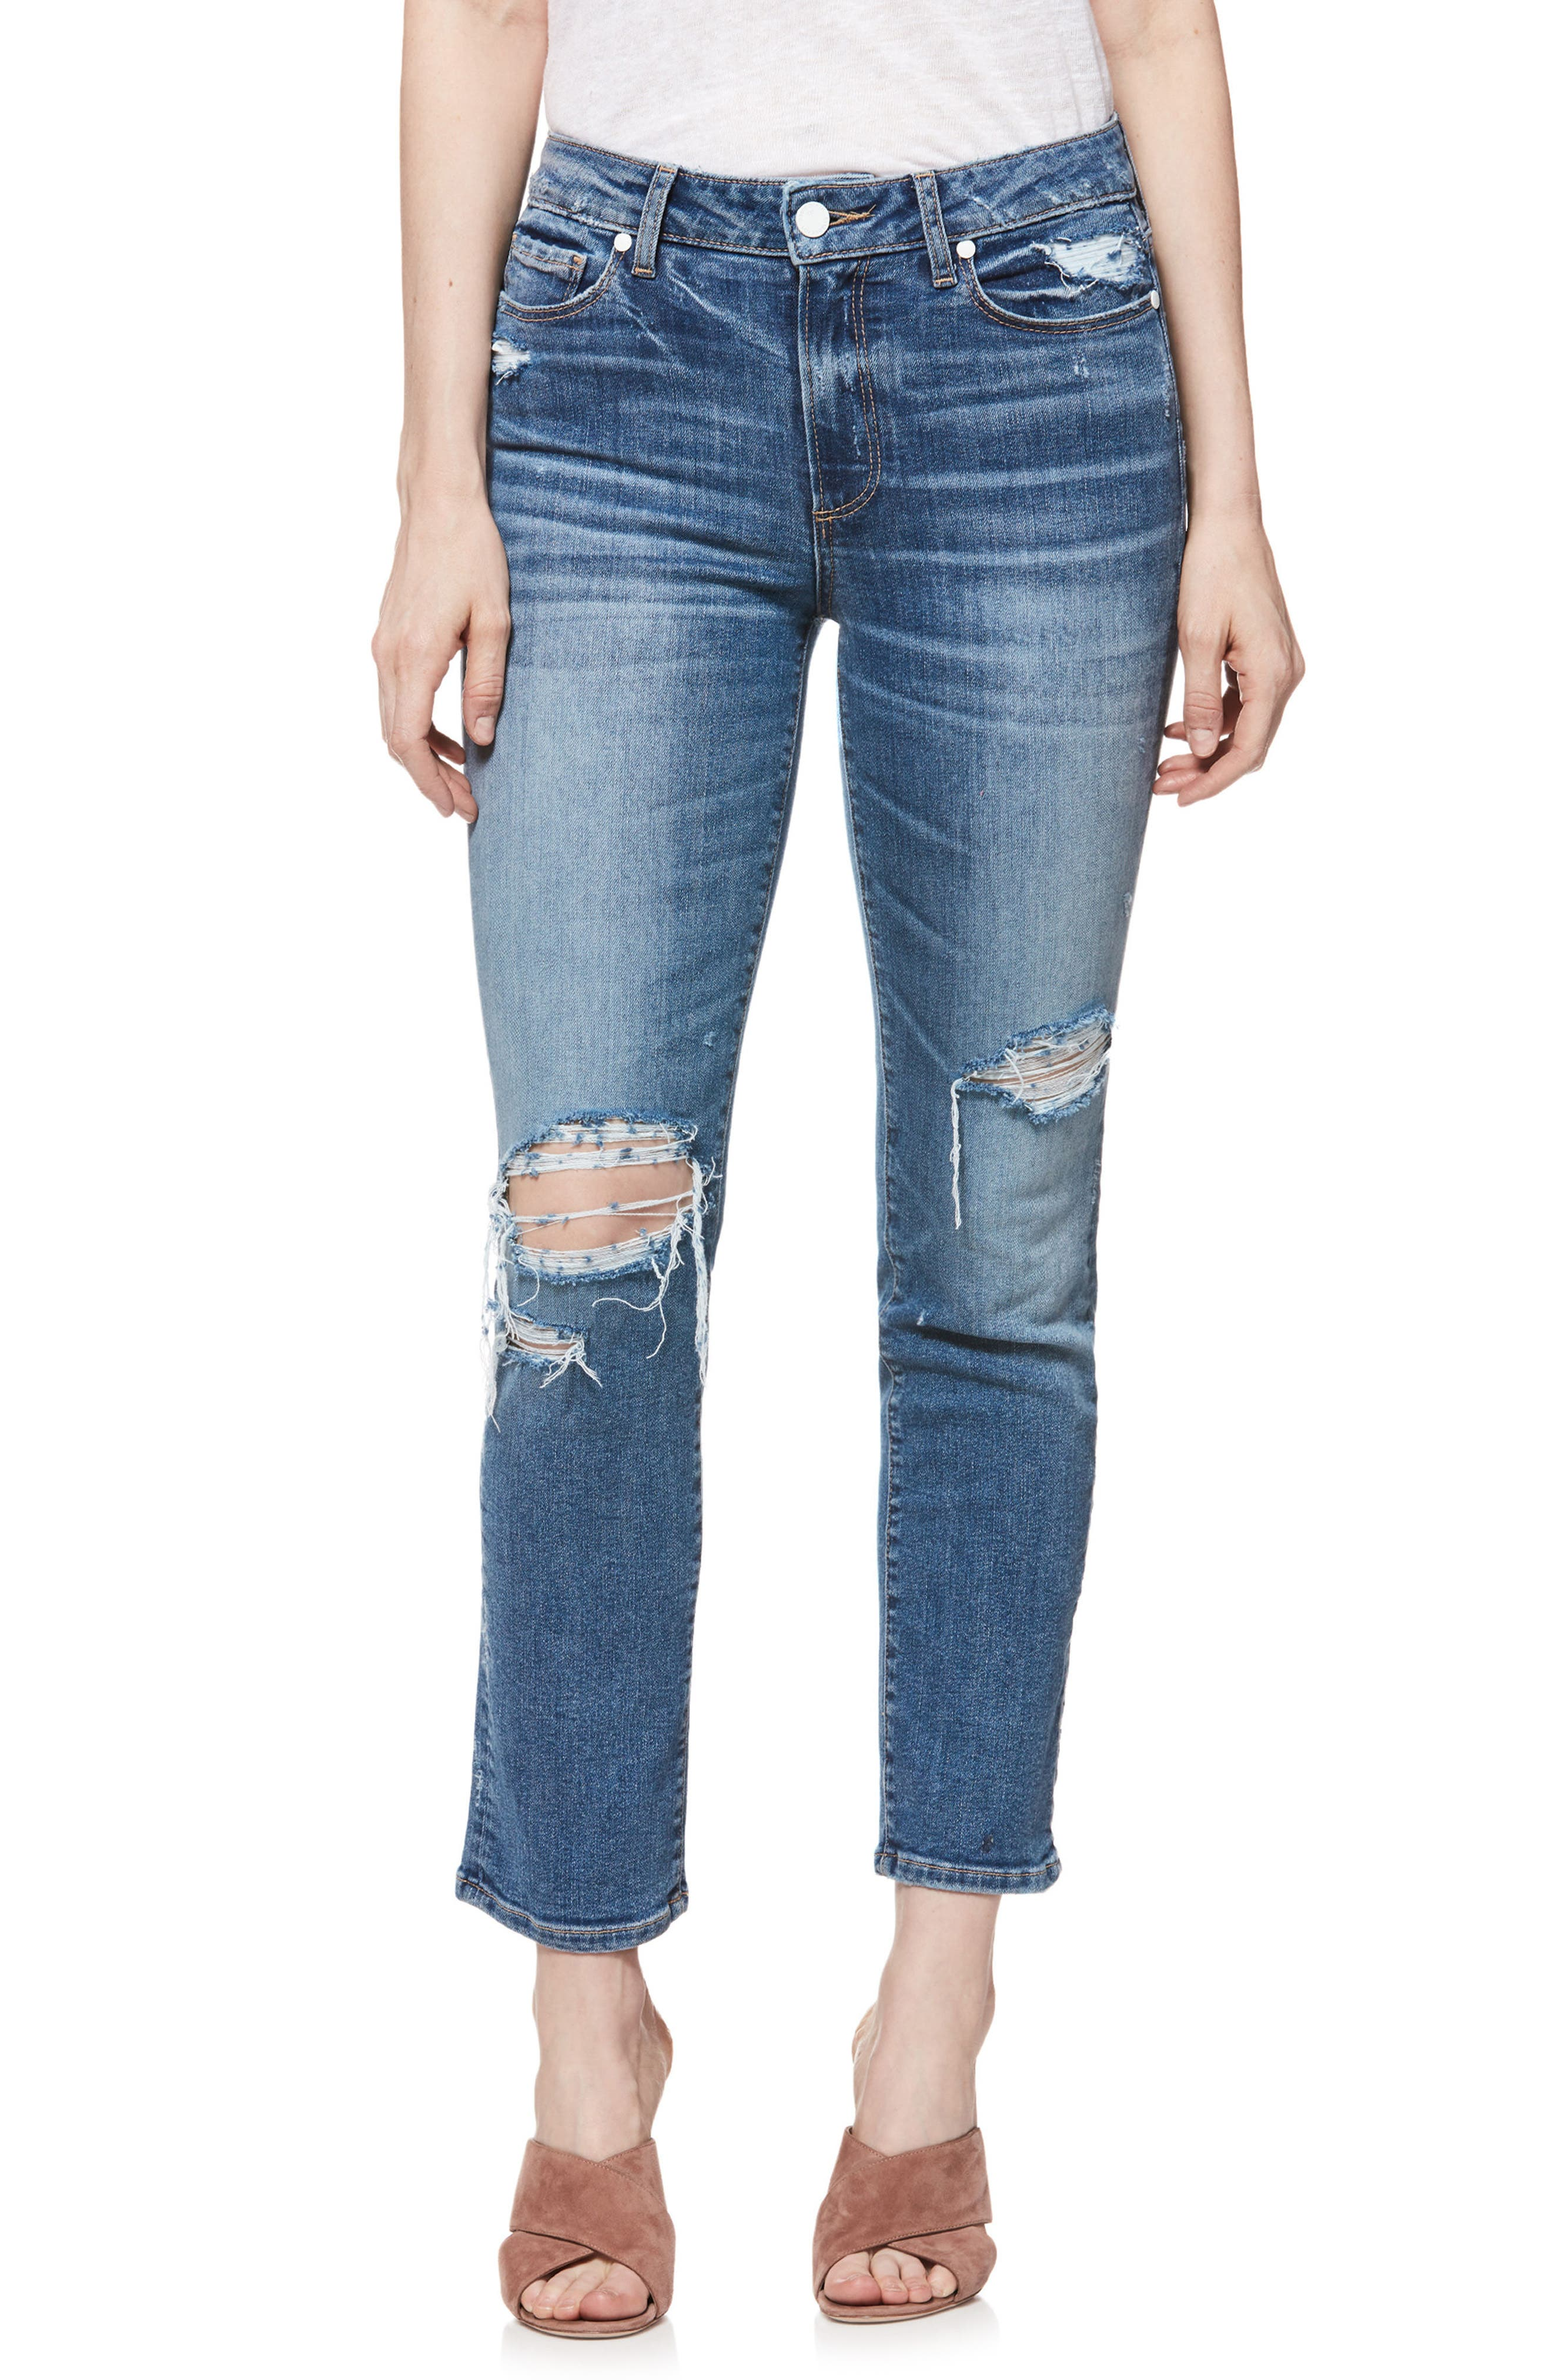 PAIGE, Verdugo Transcend Vintage Ripped Ankle Skinny Jeans, Main thumbnail 1, color, EMBARCADERO DESTRUCTED